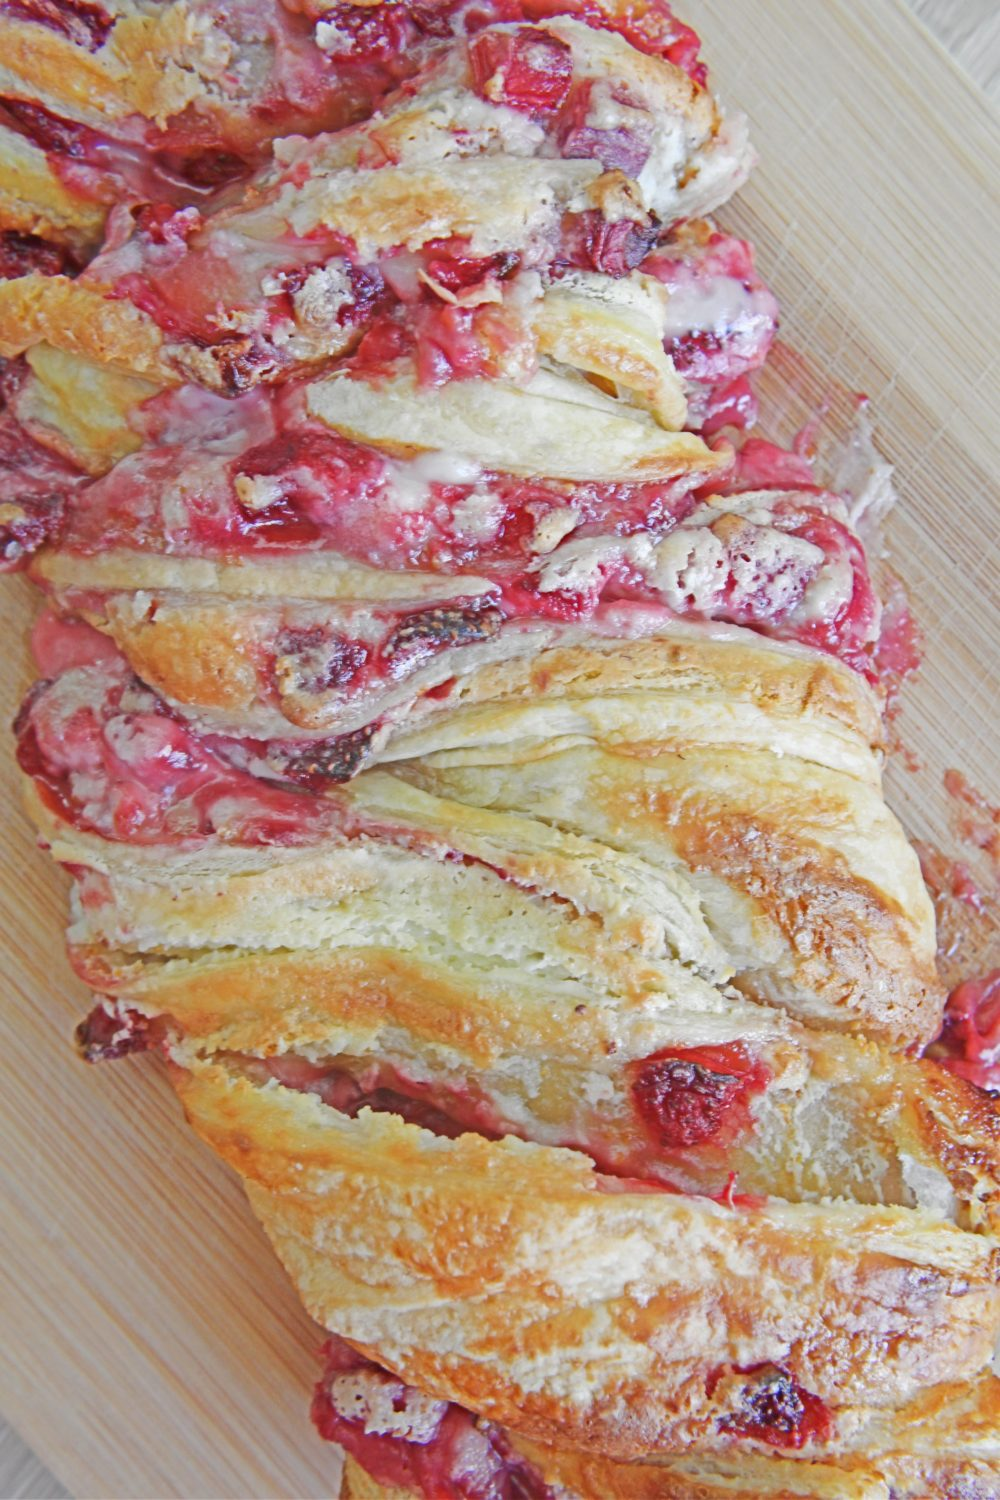 Strawberry puff pastry braid with cream cheese, on a cutting board